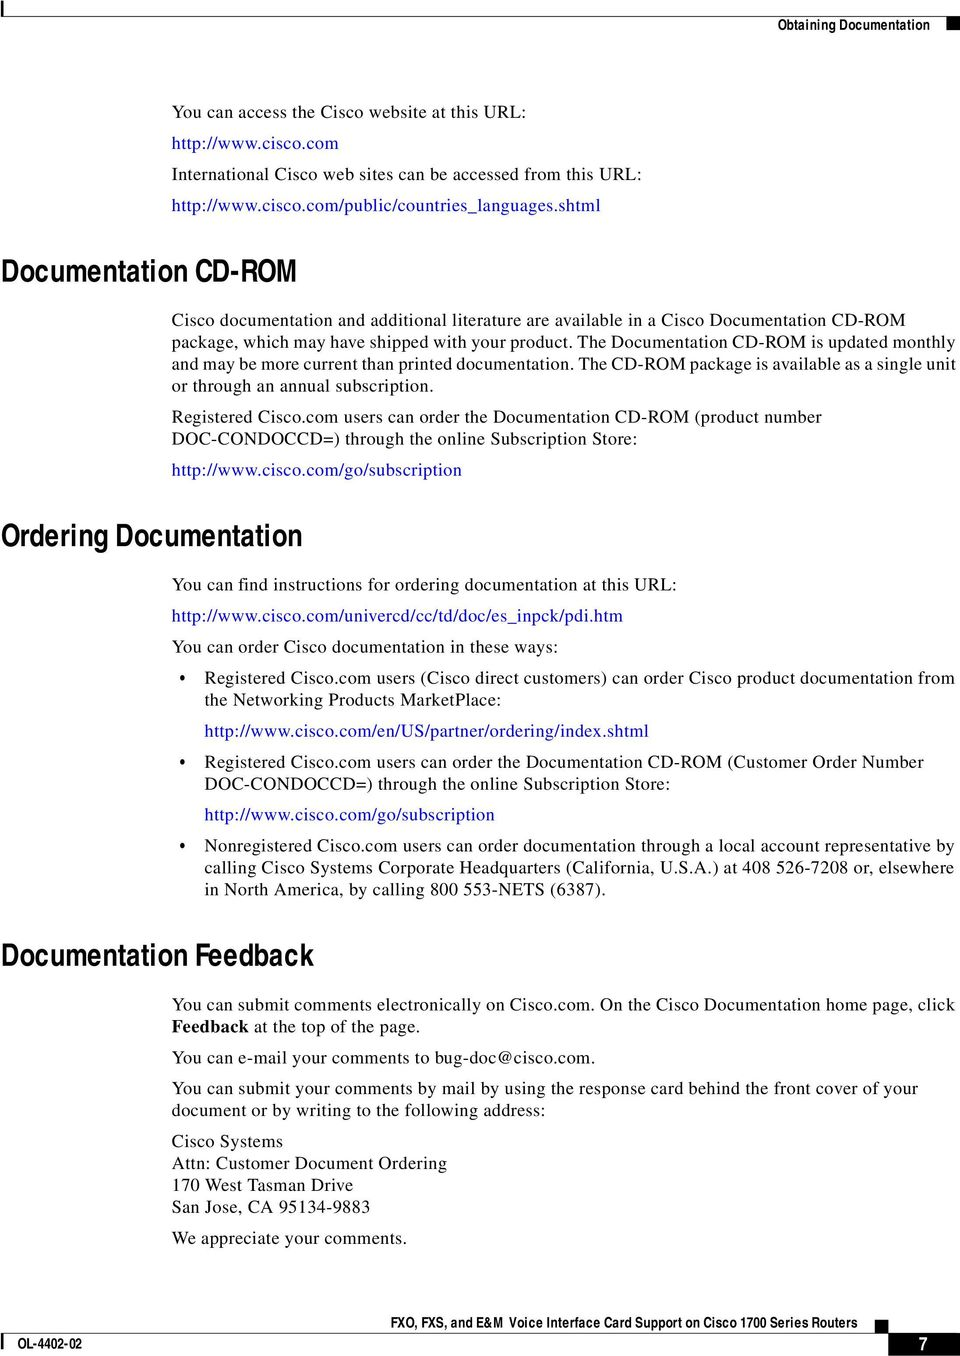 The Documentation CD-ROM is updated monthly and may be more current than printed documentation. The CD-ROM package is available as a single unit or through an annual subscription. Registered Cisco.